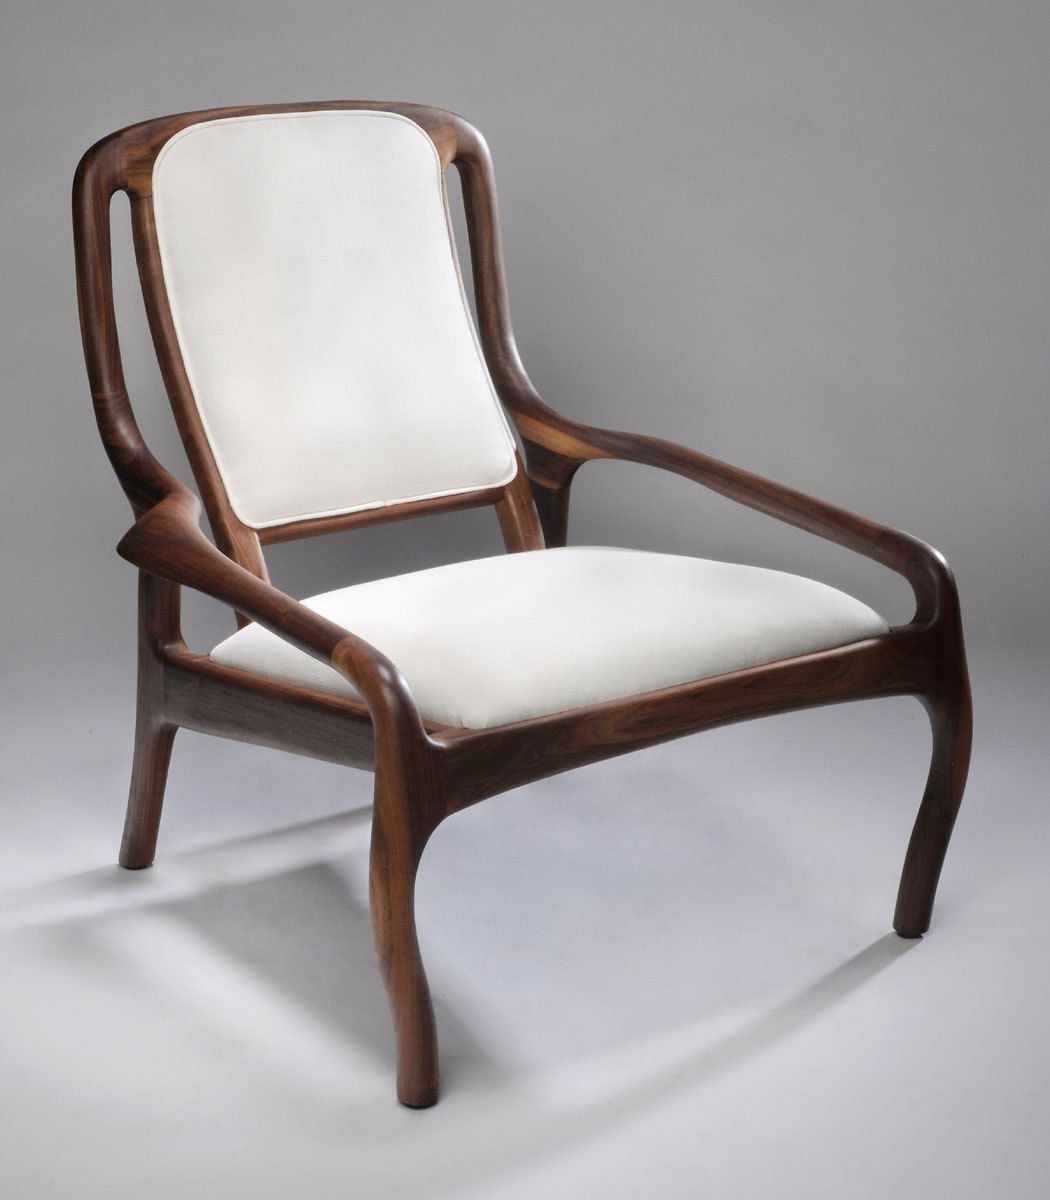 Karnali lounge chair